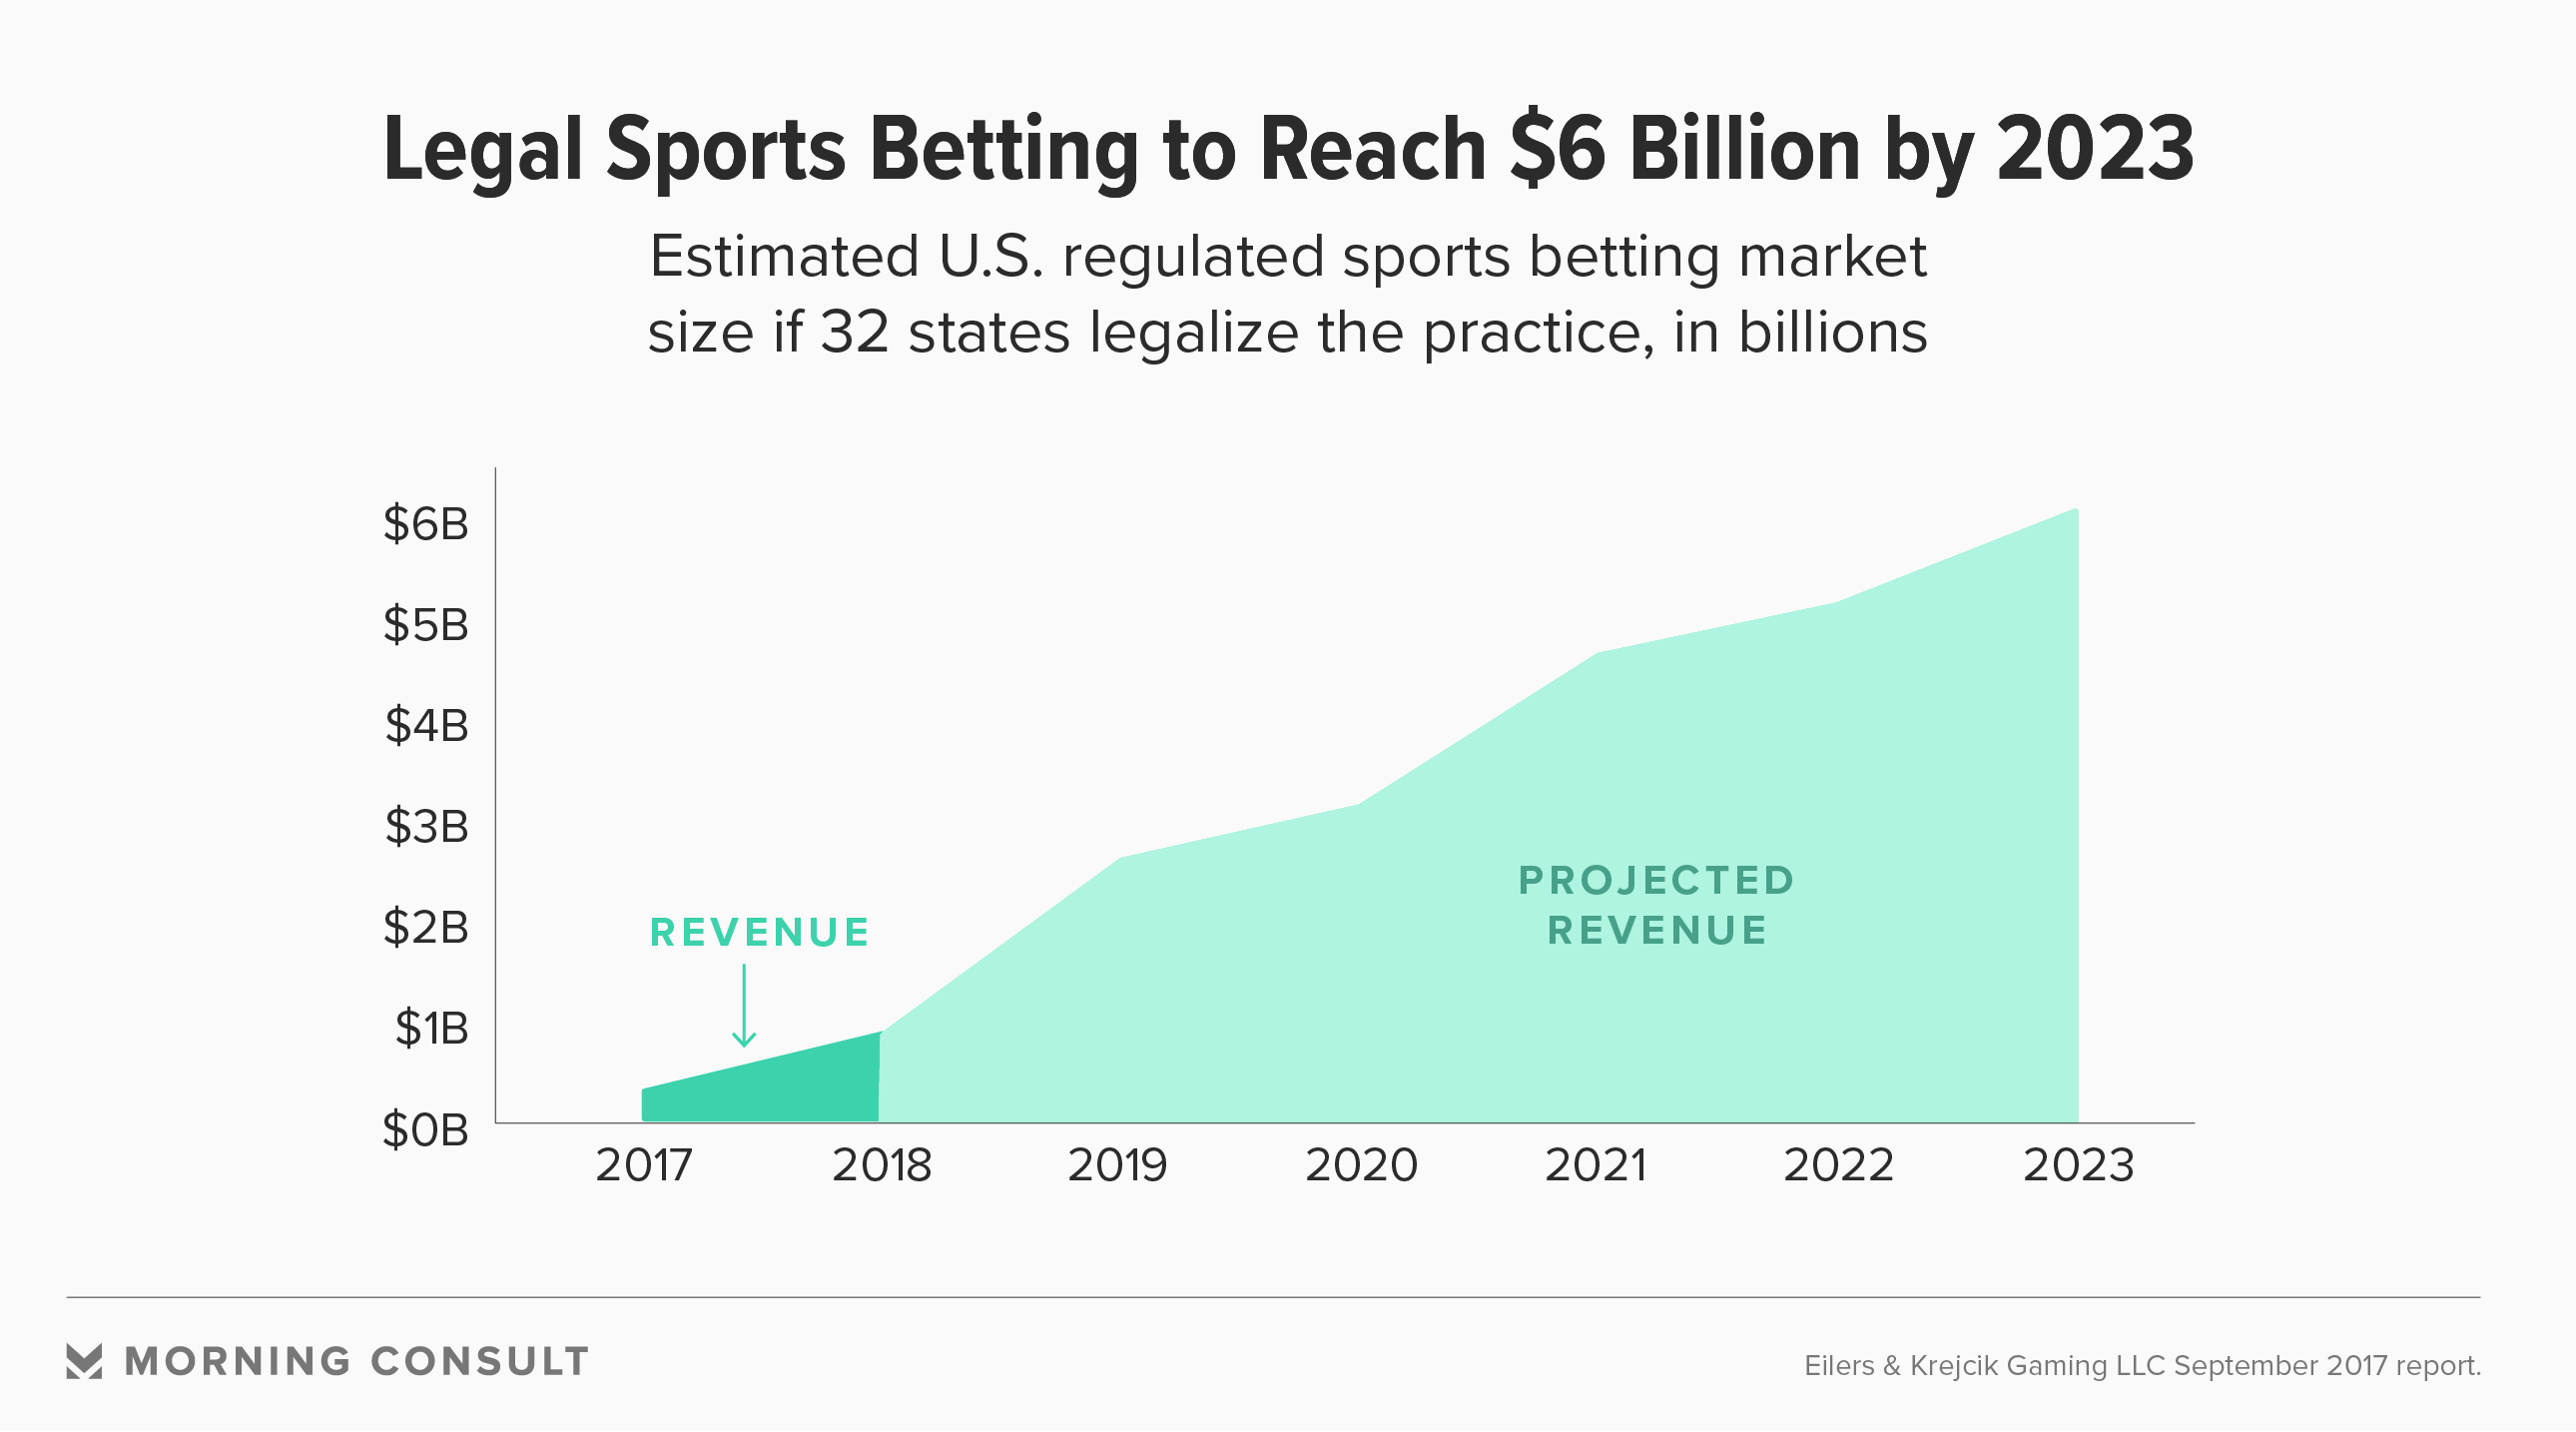 Legal Sports Gambling's Future: Younger and Less Wealthy Bettors